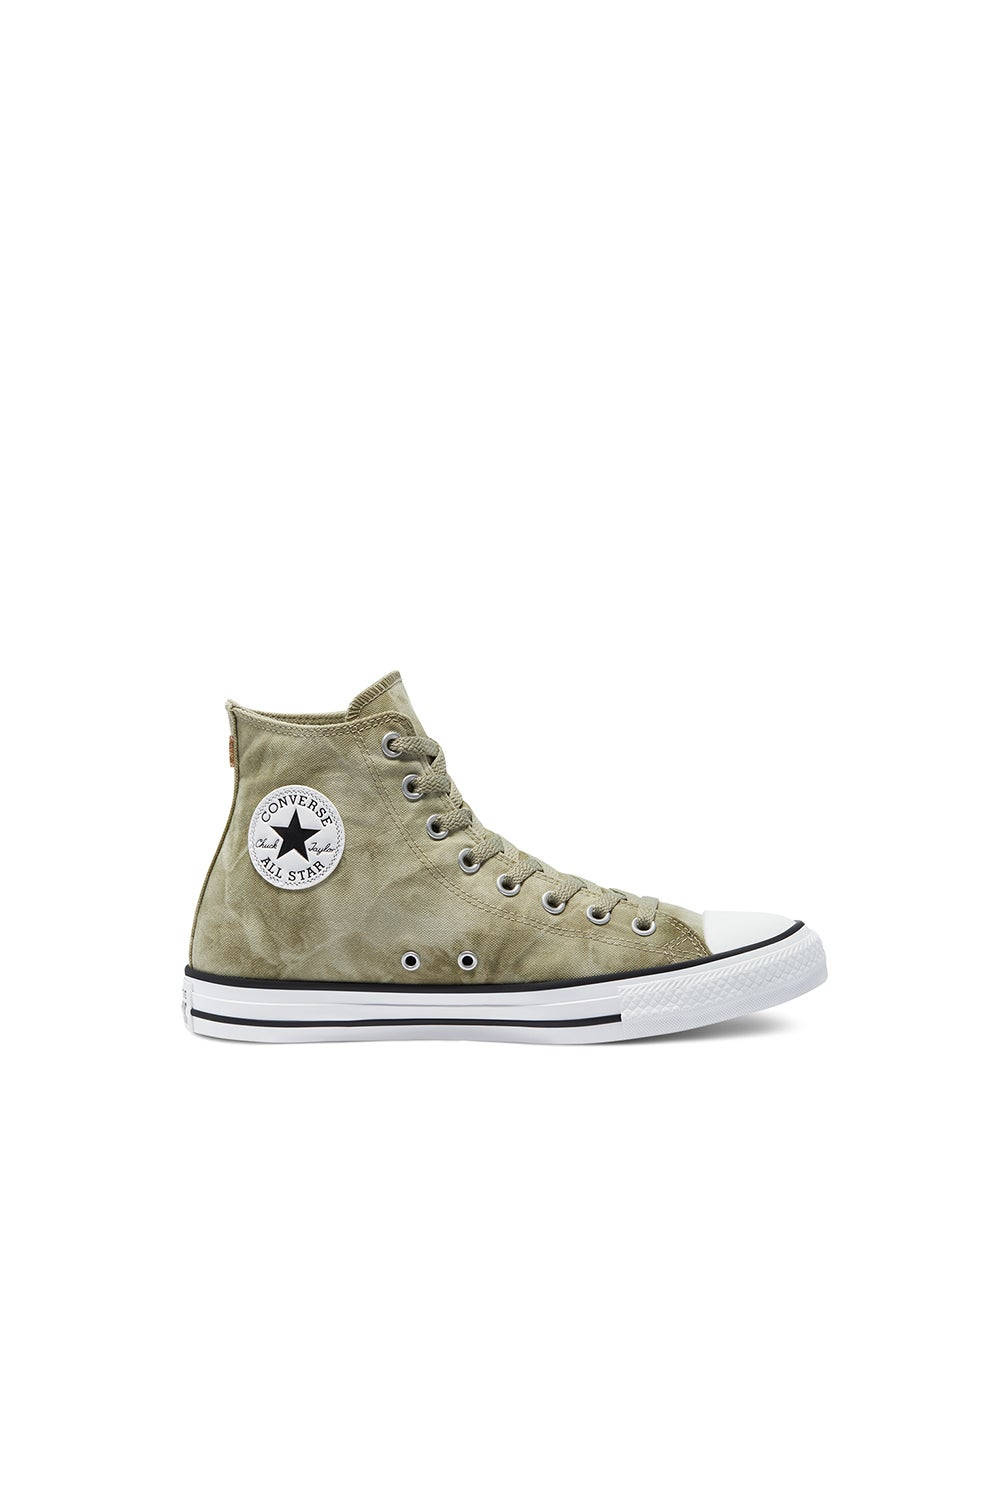 Converse Chuck Taylor All Star Summer Daze Wash High Top Light Field Surplus